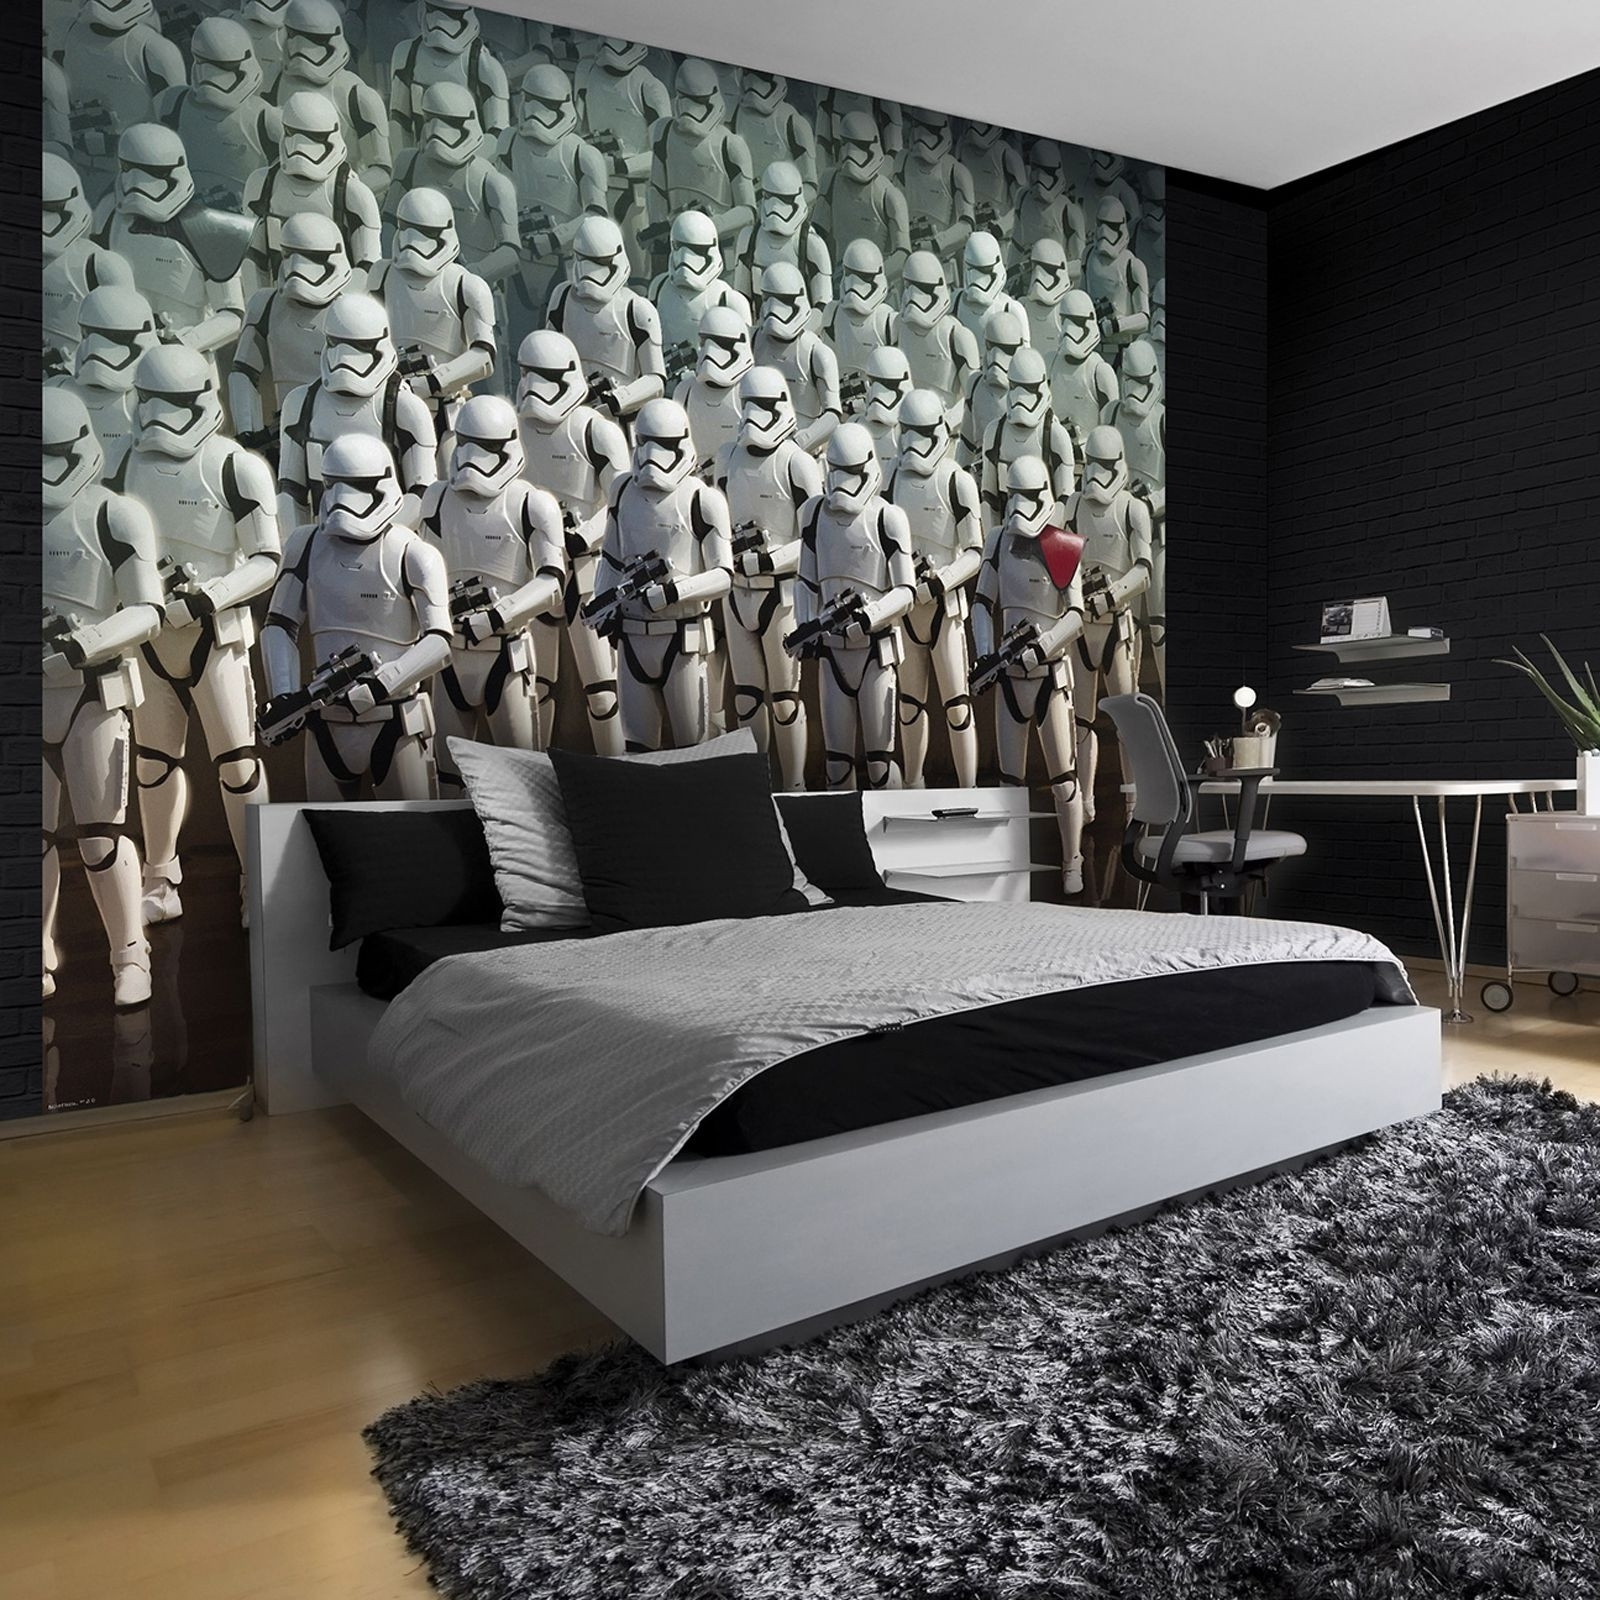 Popular Star Wars Wall Art With Regard To Star Wars Wall Art Bedroom : Andrews Living Arts – Fantastic Room (View 11 of 15)